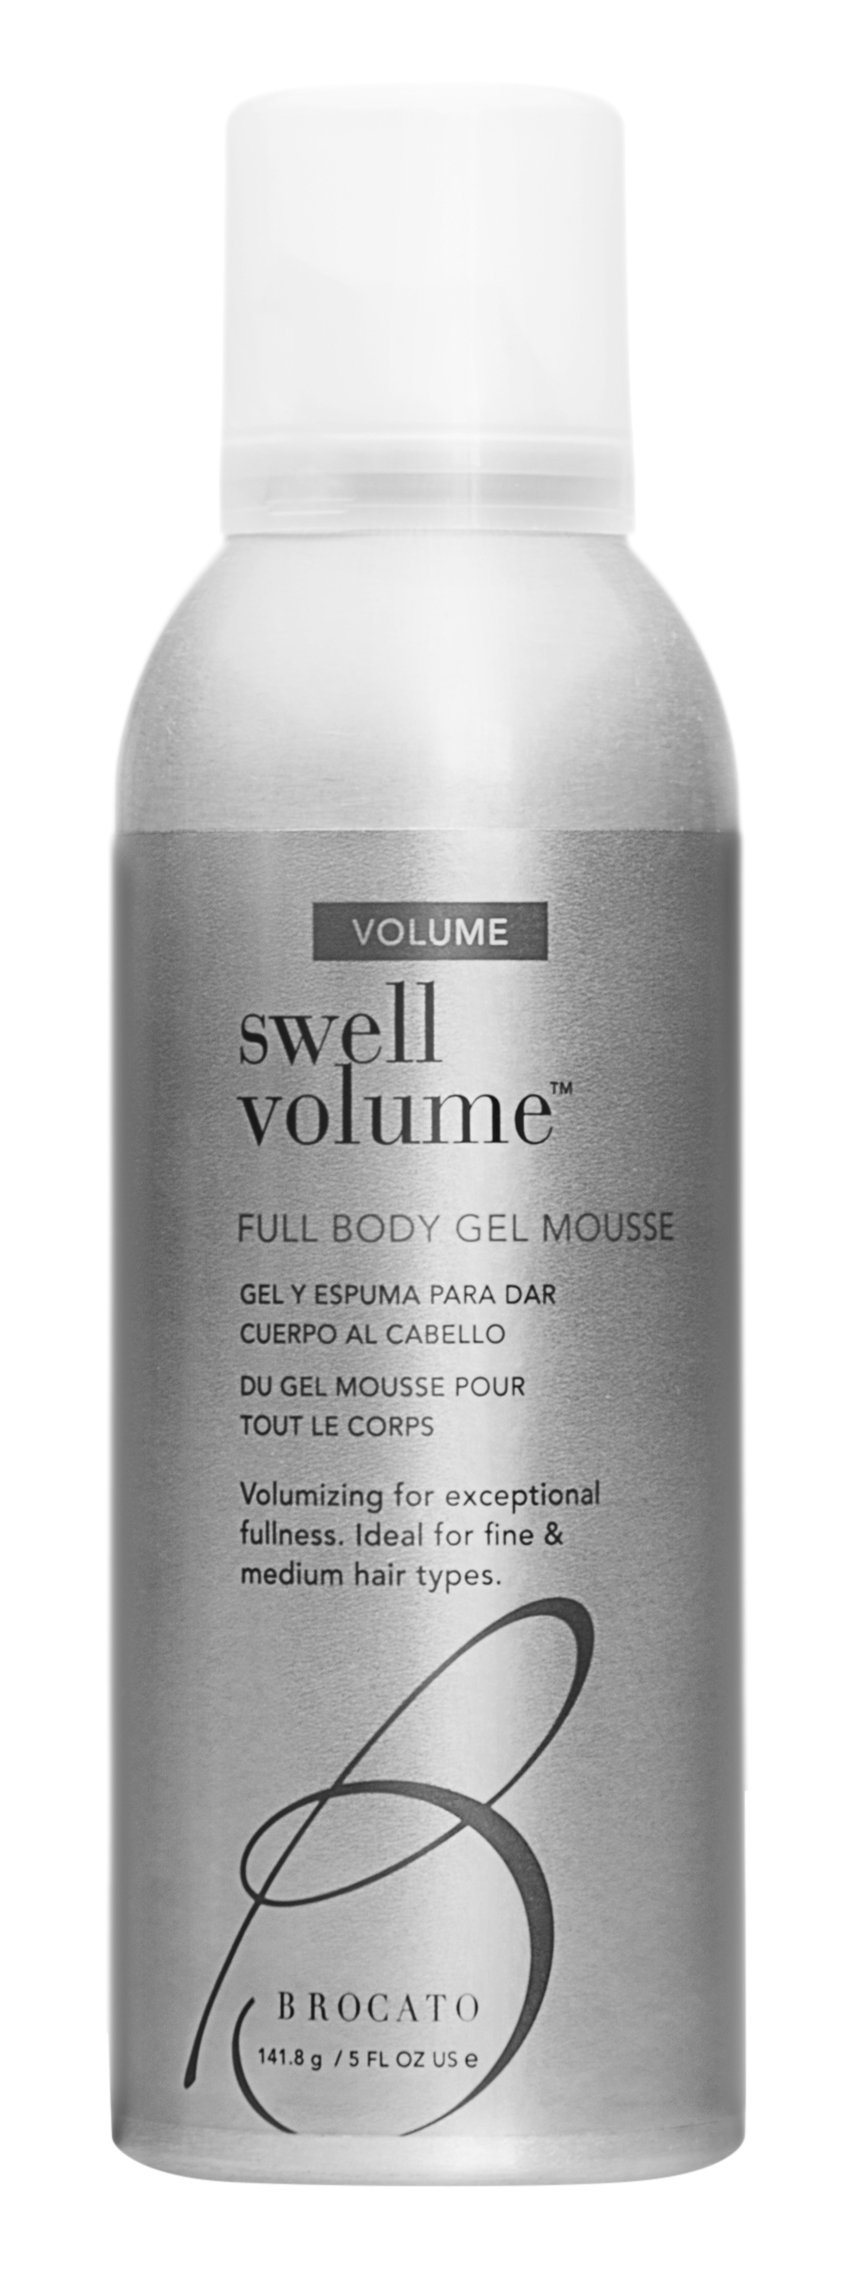 Brocato Swell Volume Gel Mousse: Curl Styling Products for Enhancing and Volumizing Curly or Wavy Hair for Full Body and Shine - Anti Frizz Plumping Mousse for Men or Women - 5 Oz